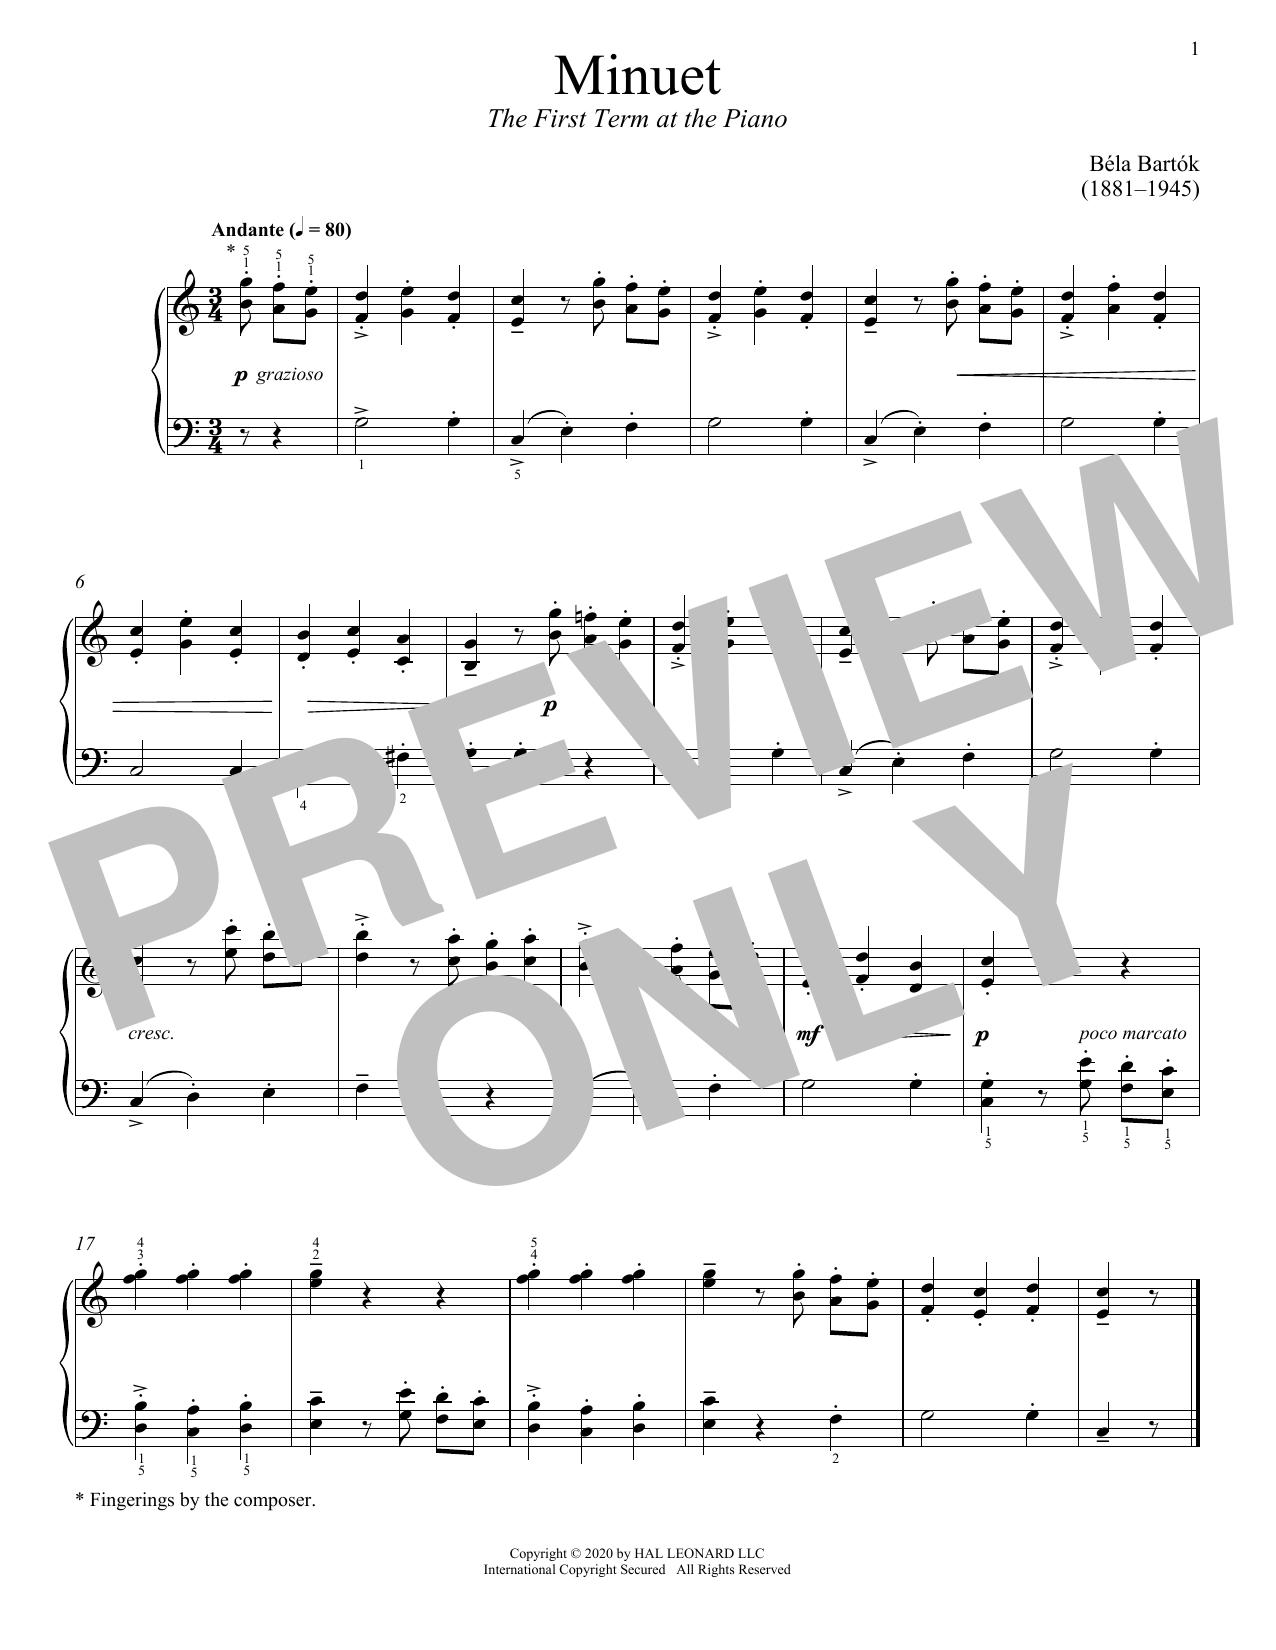 The First Term At The Piano, Minuet (Piano Solo)